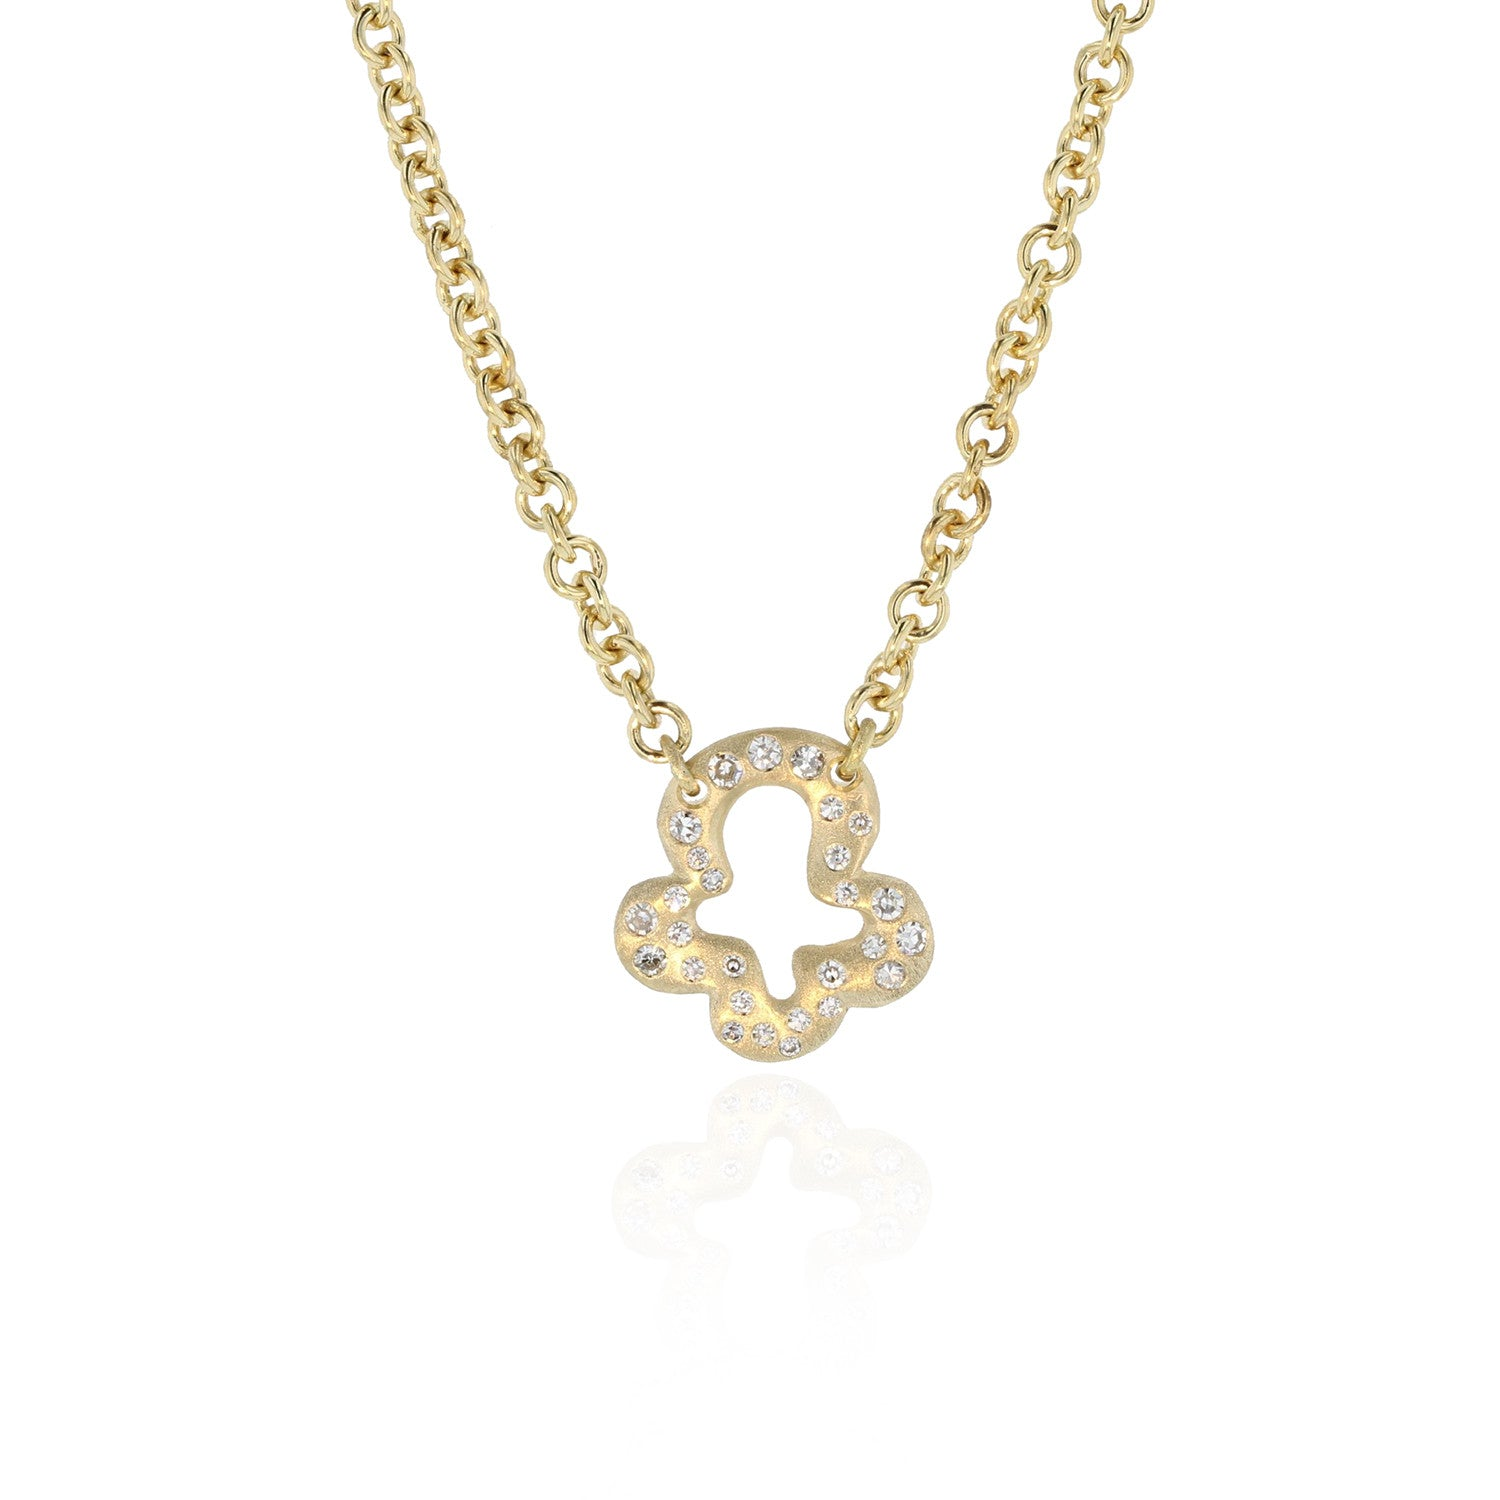 Trèfle Charm Necklace with Diamonds - 18K Yellow gold